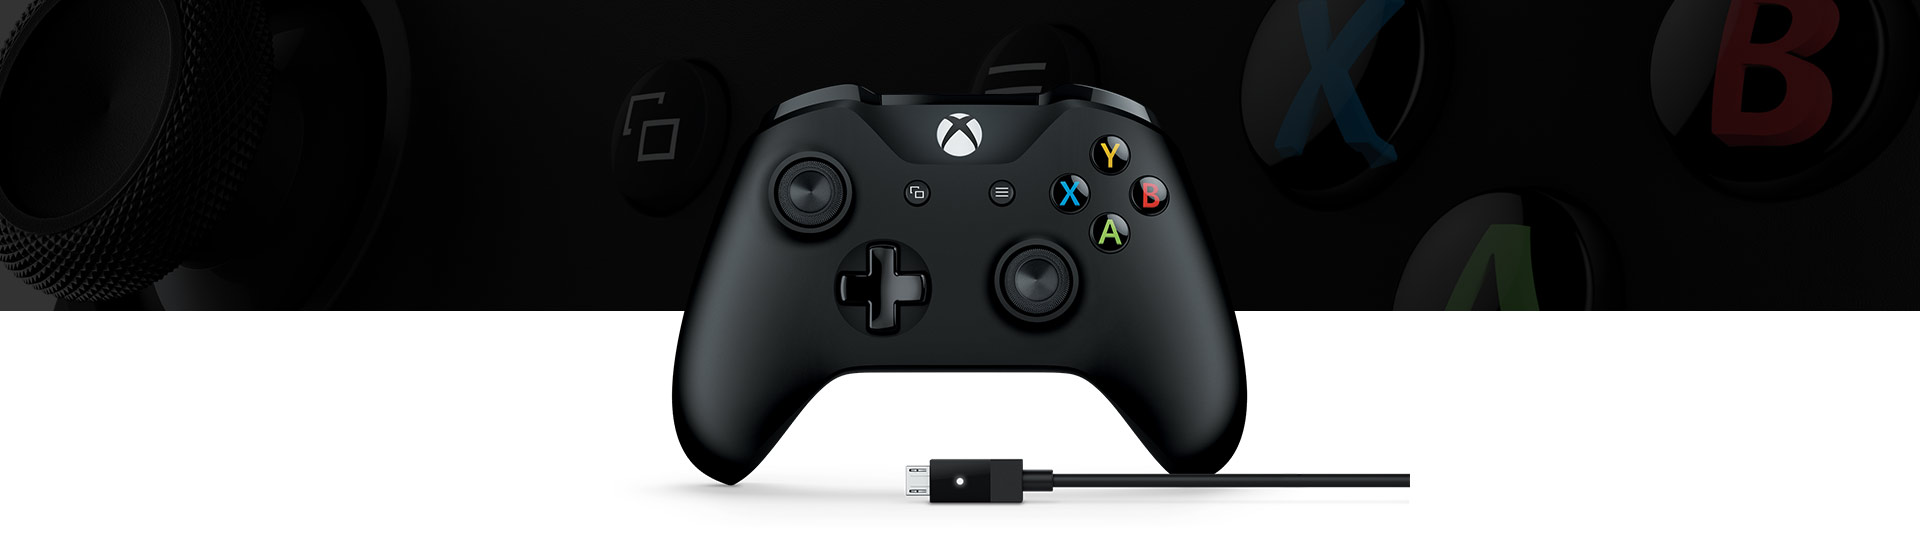 Xbox-handkontroll + Windows-kabel